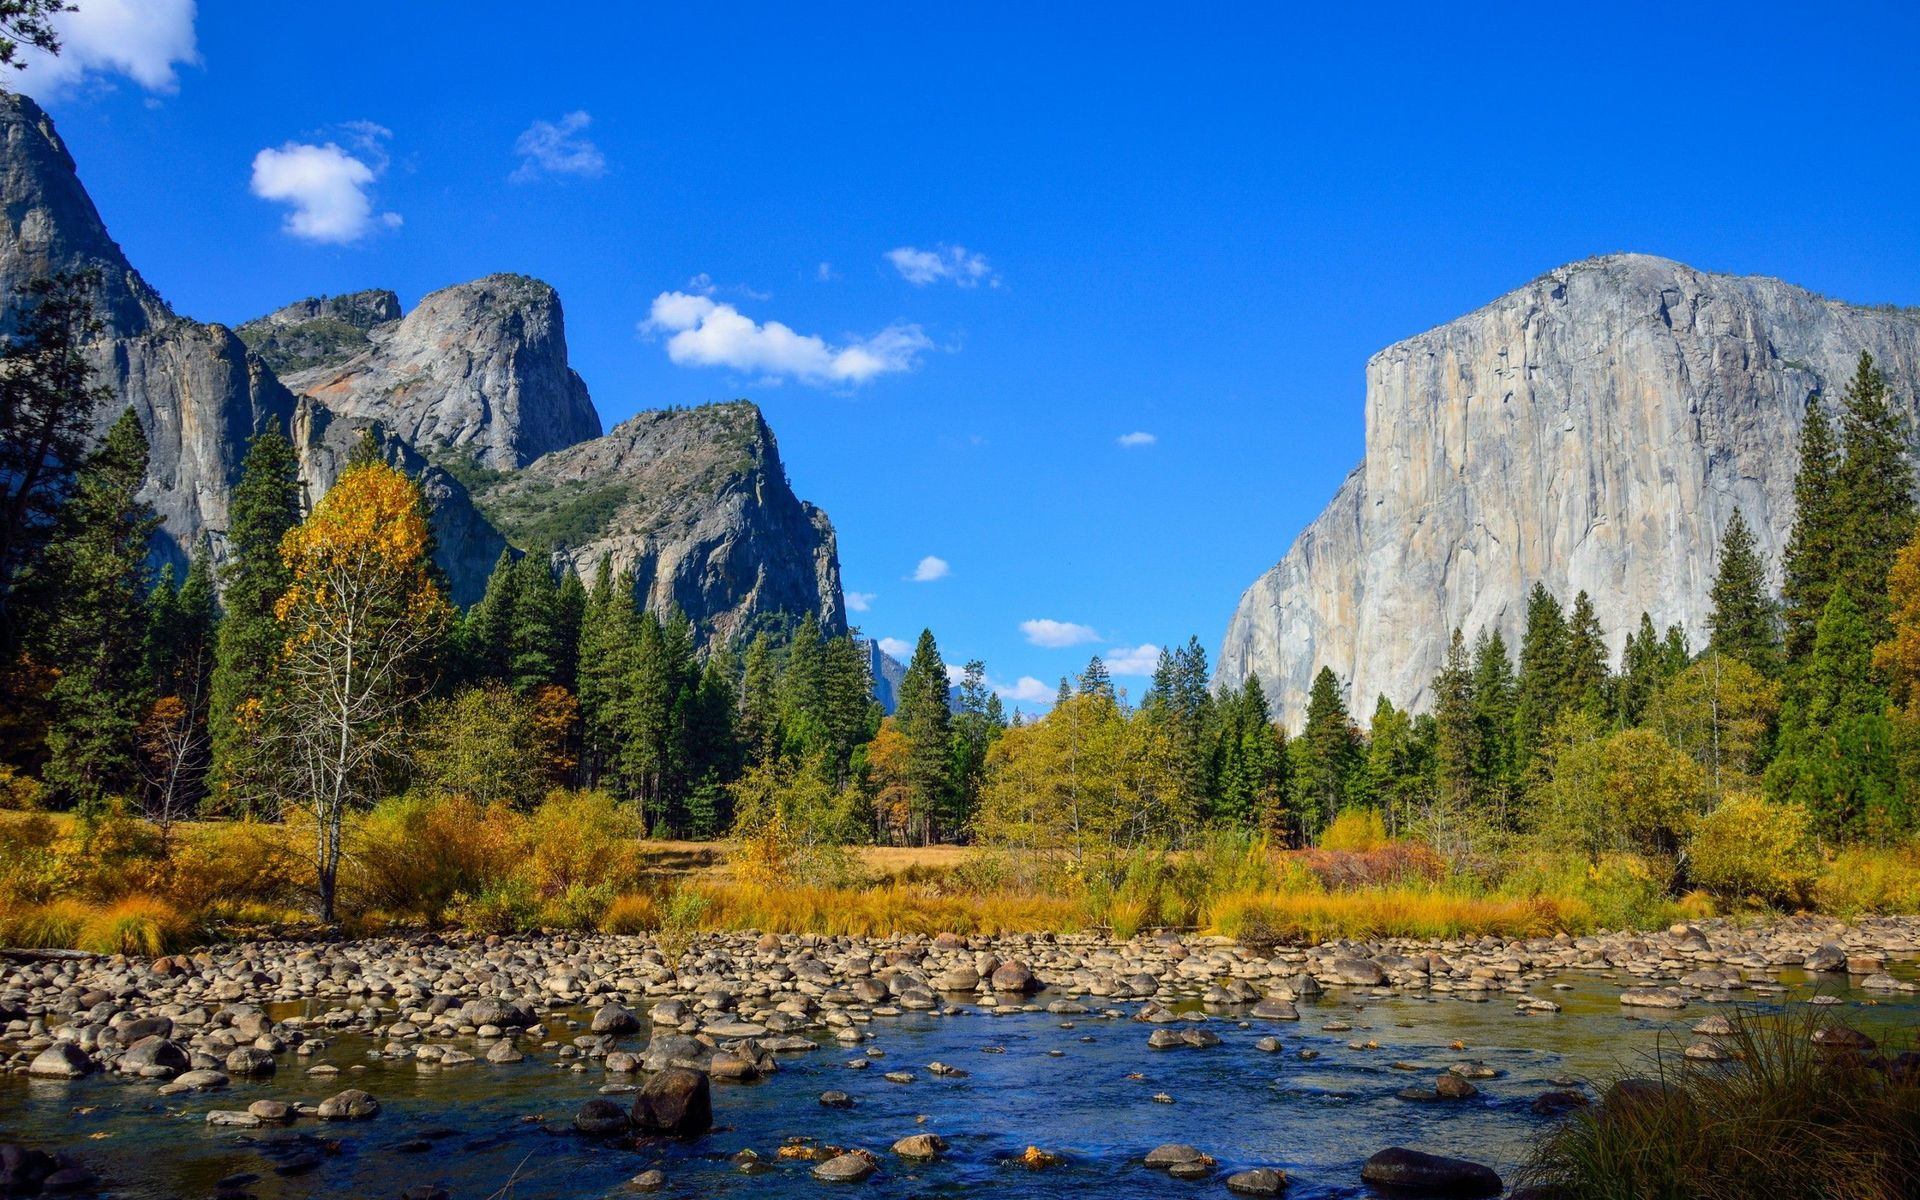 Yosemite National Park wallpaper 1920x1200